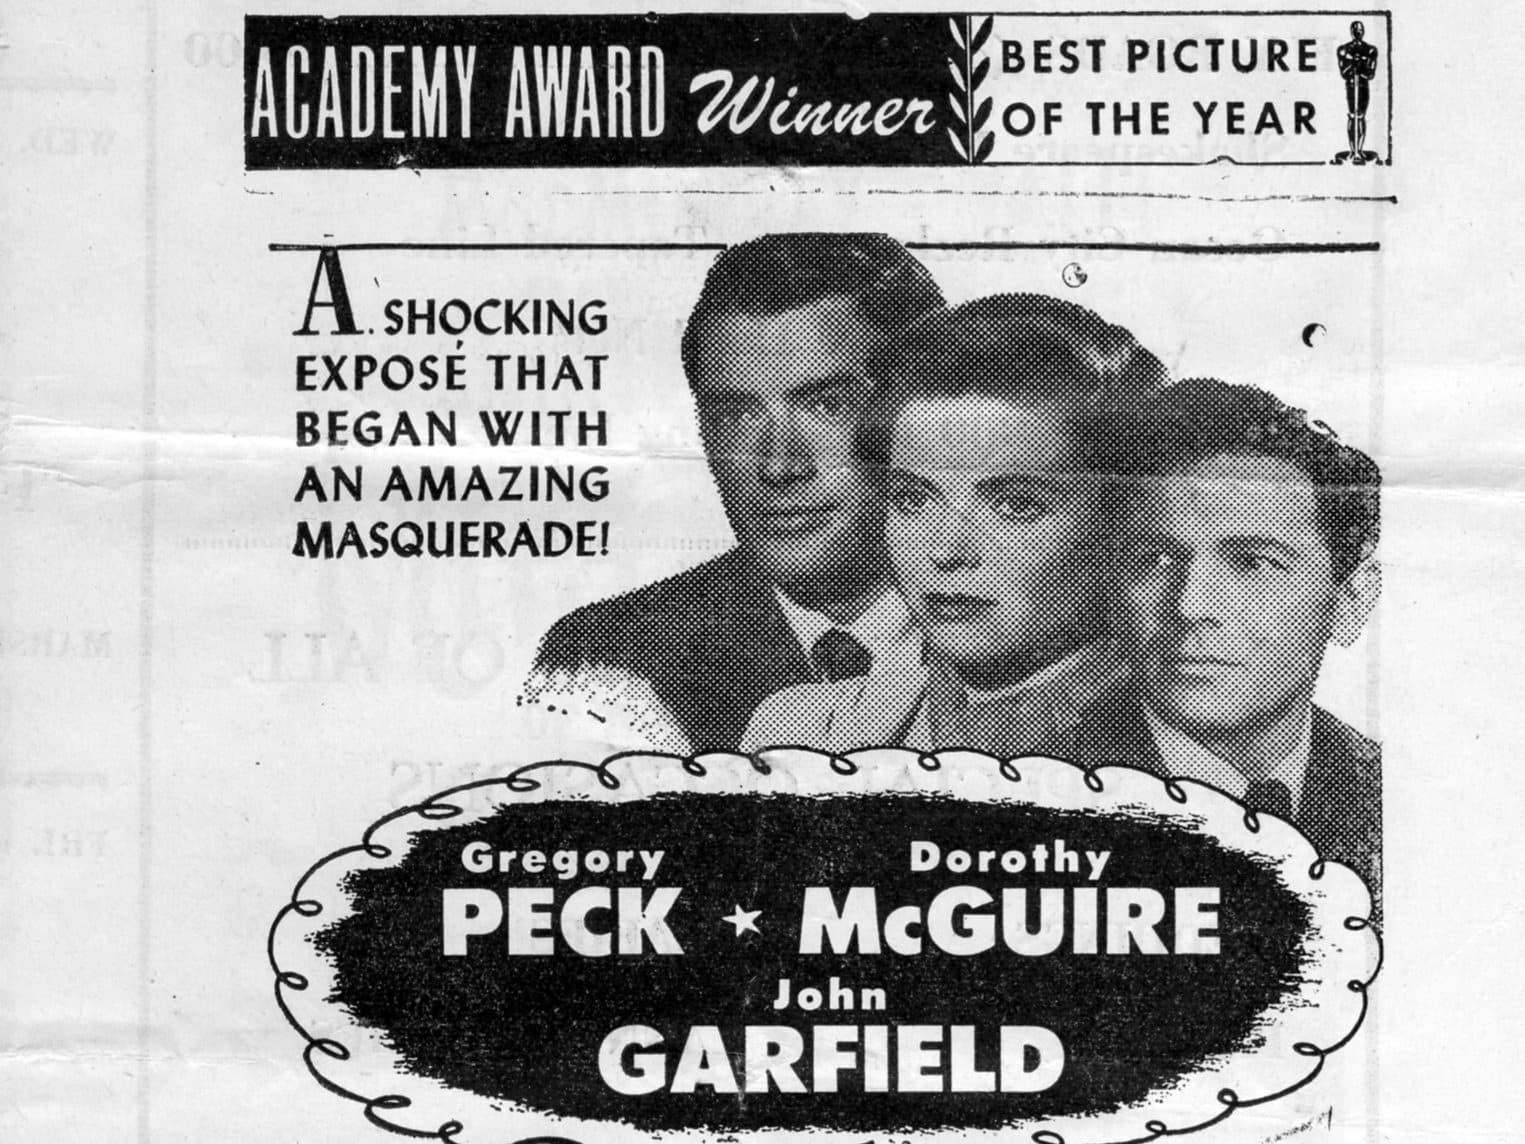 A coming feature bill featuring Gregory Peck